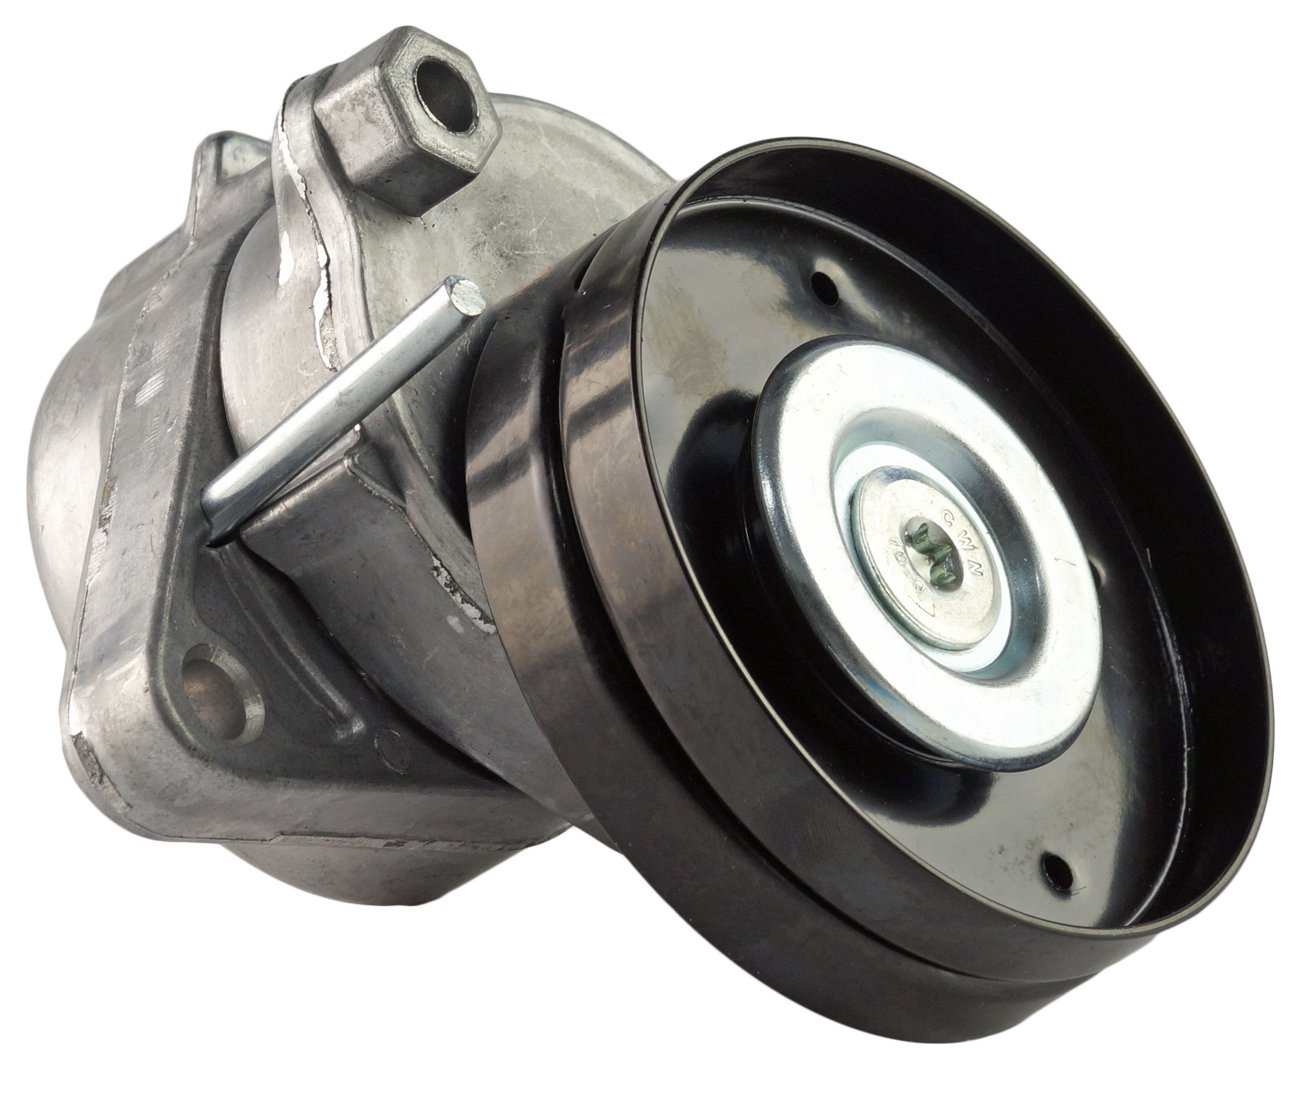 Bapmic 1122000870 Drive Belt Tensioner with Pulley for Mercedes W210 C208 R170 W220 W163